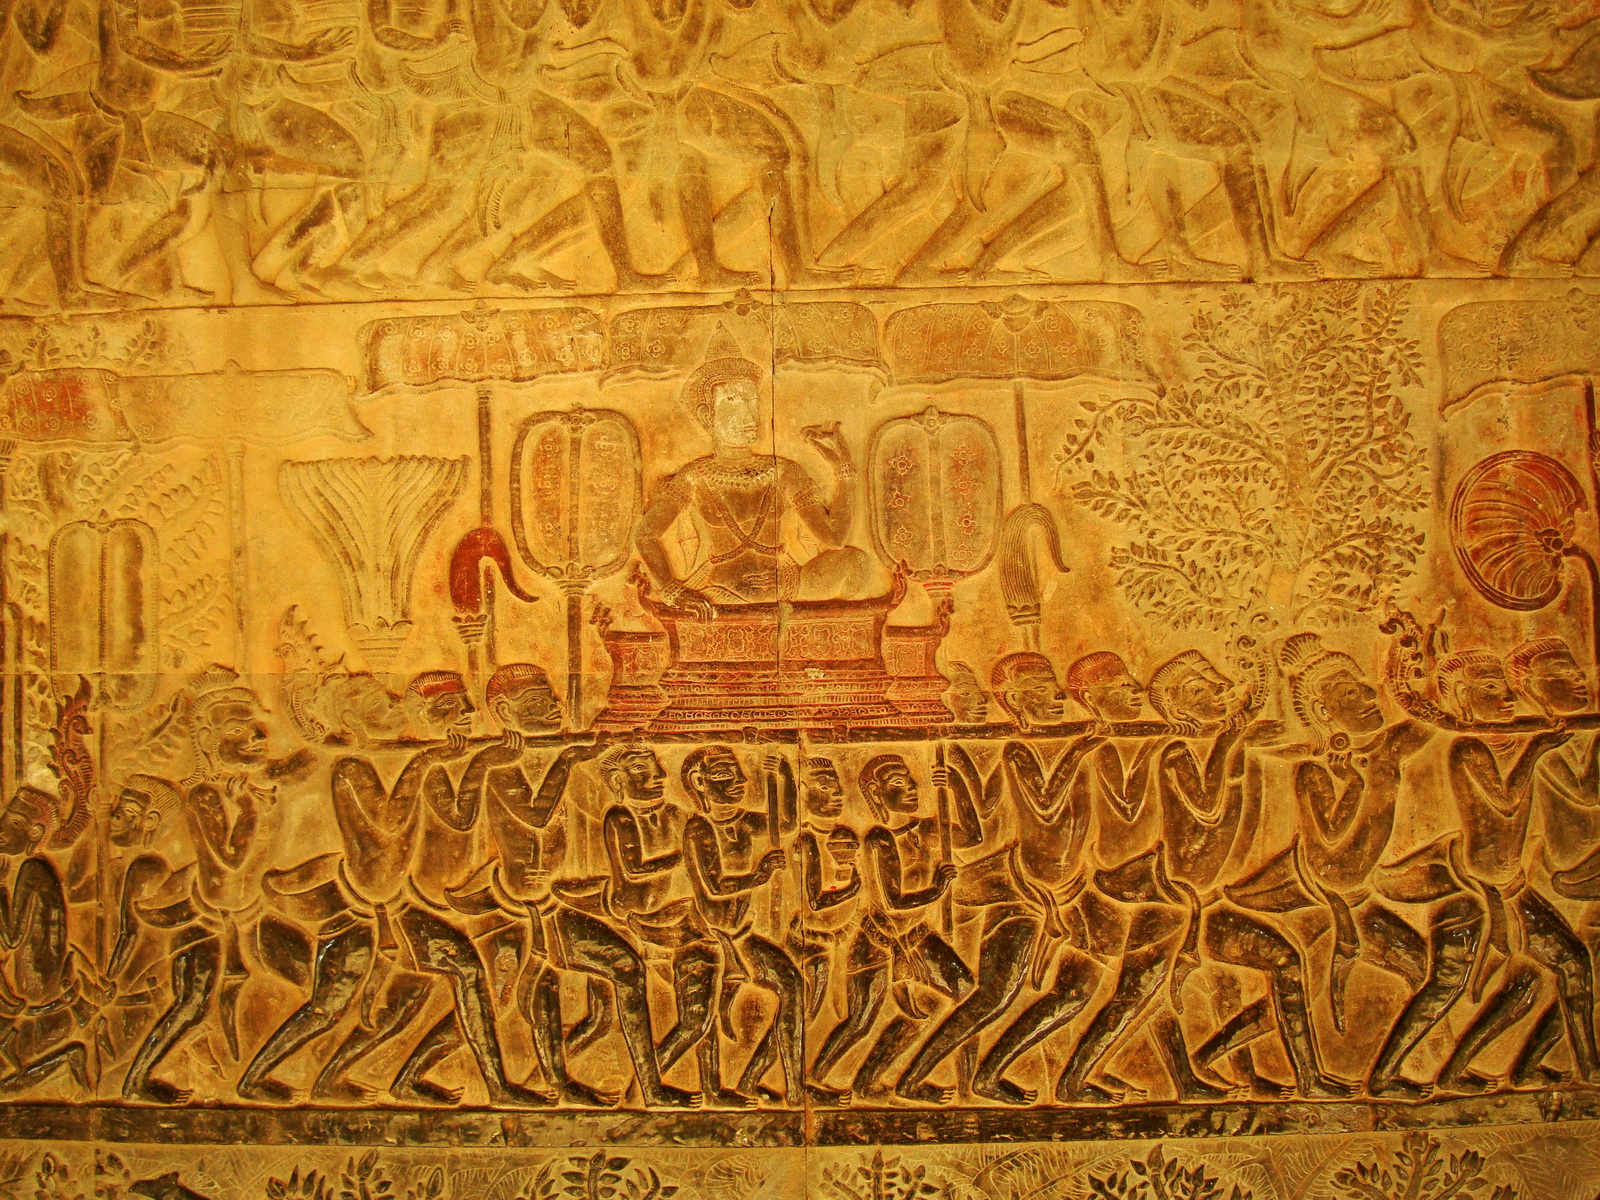 Angkor Wat Bas relief S Gallery E Wing Heavens and Hells 30